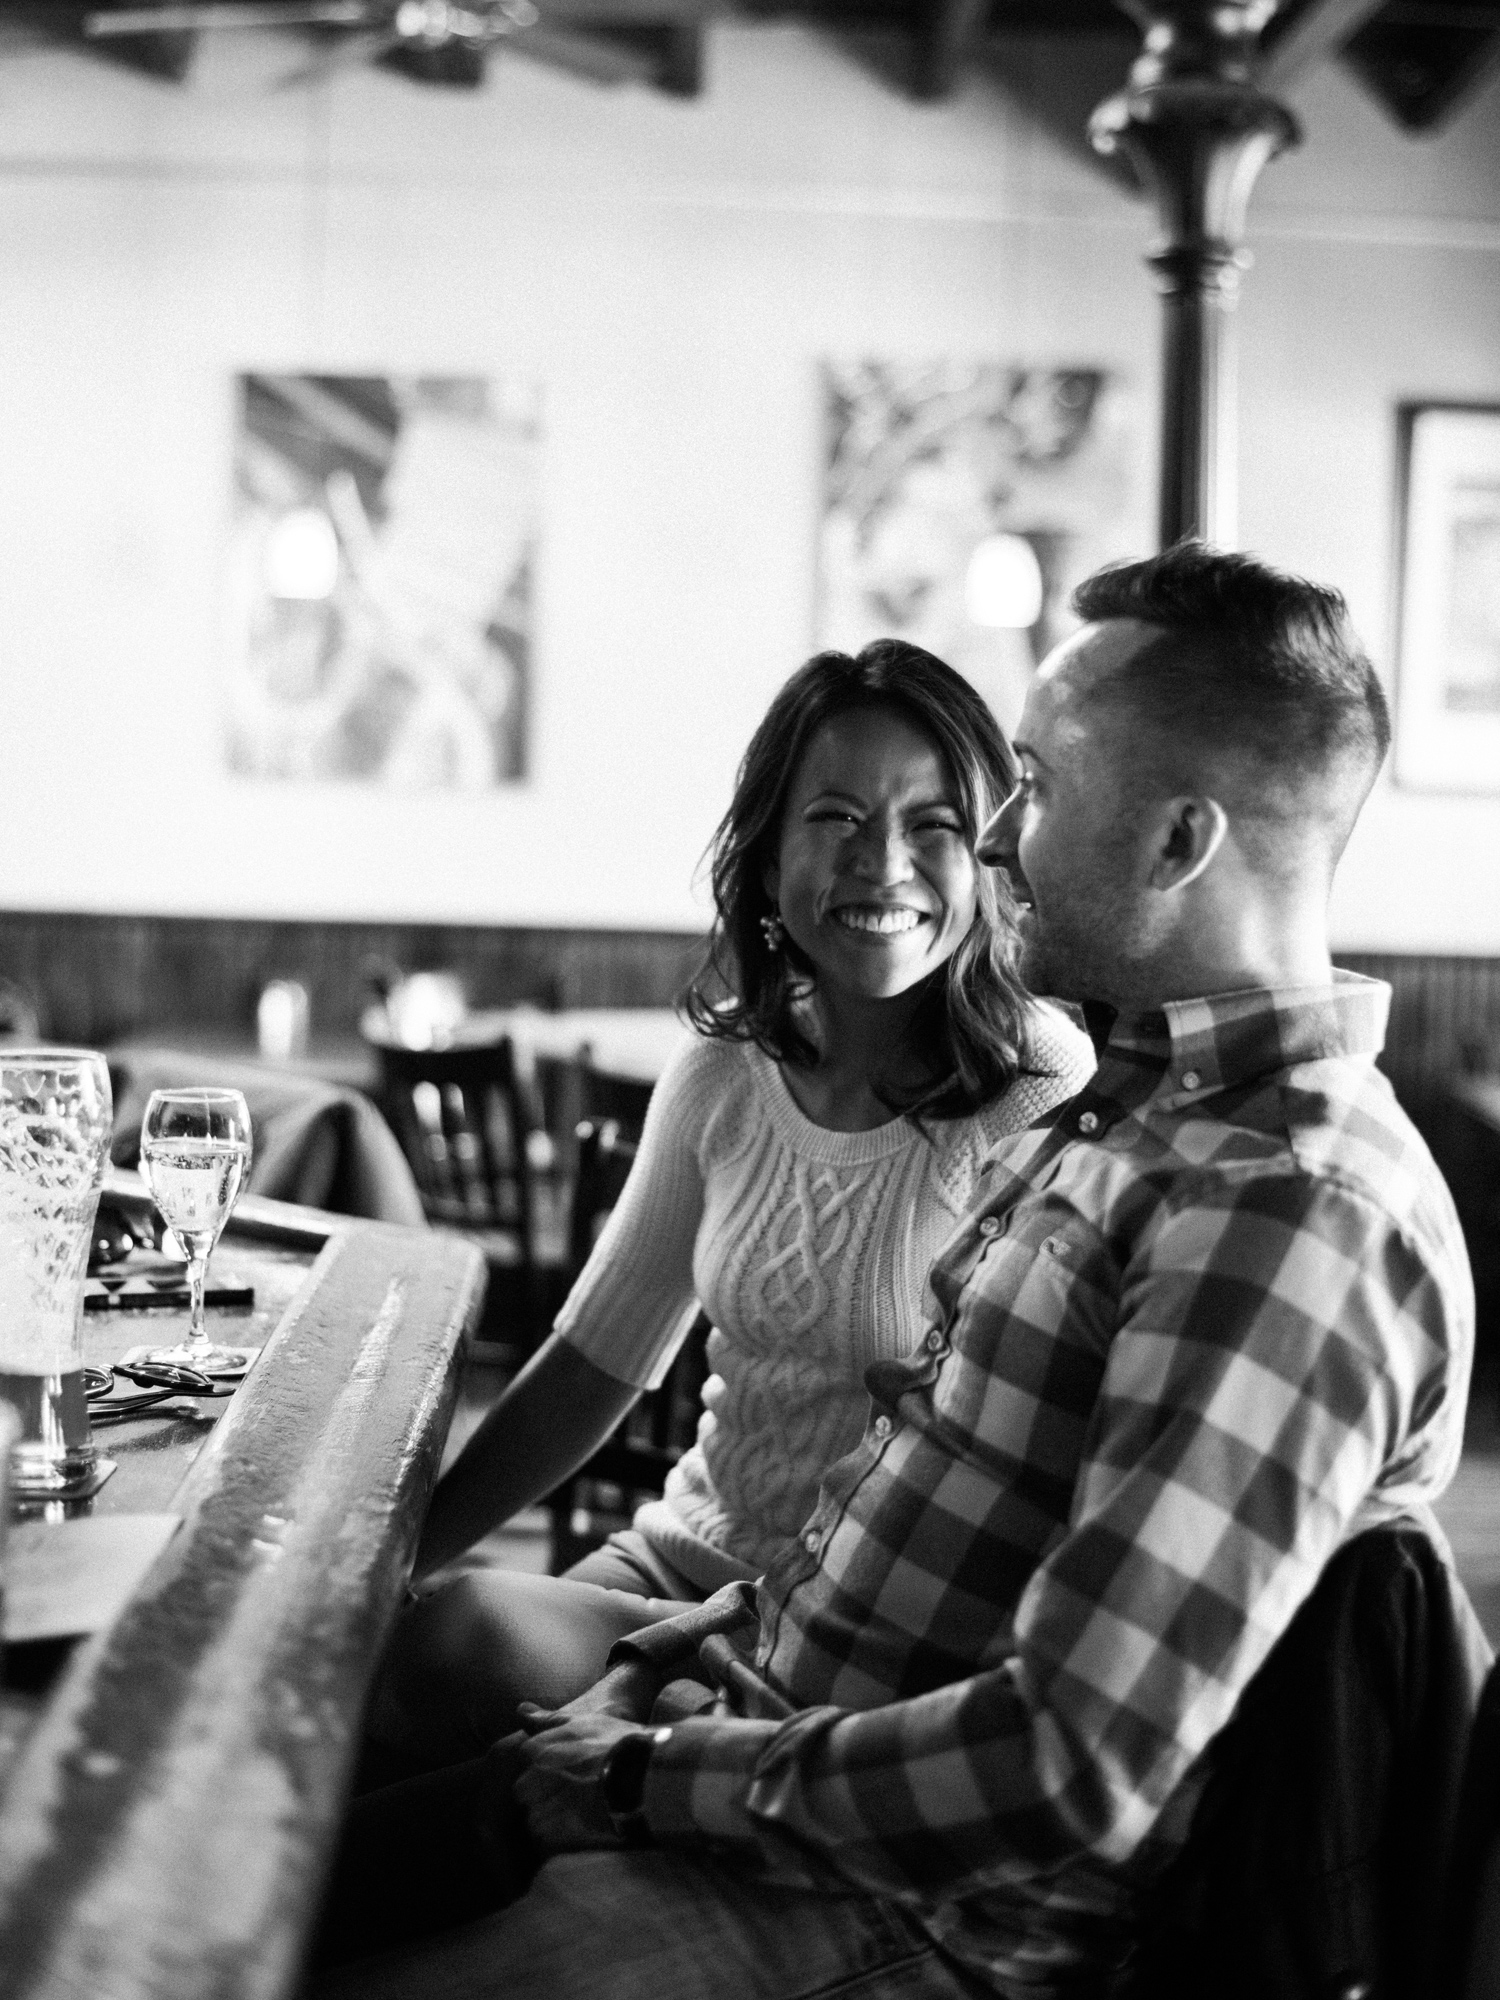 Siousca_Photography_philadelphia_engagement_film_photographer_lokal_hotel_old_city_philly_14.jpg